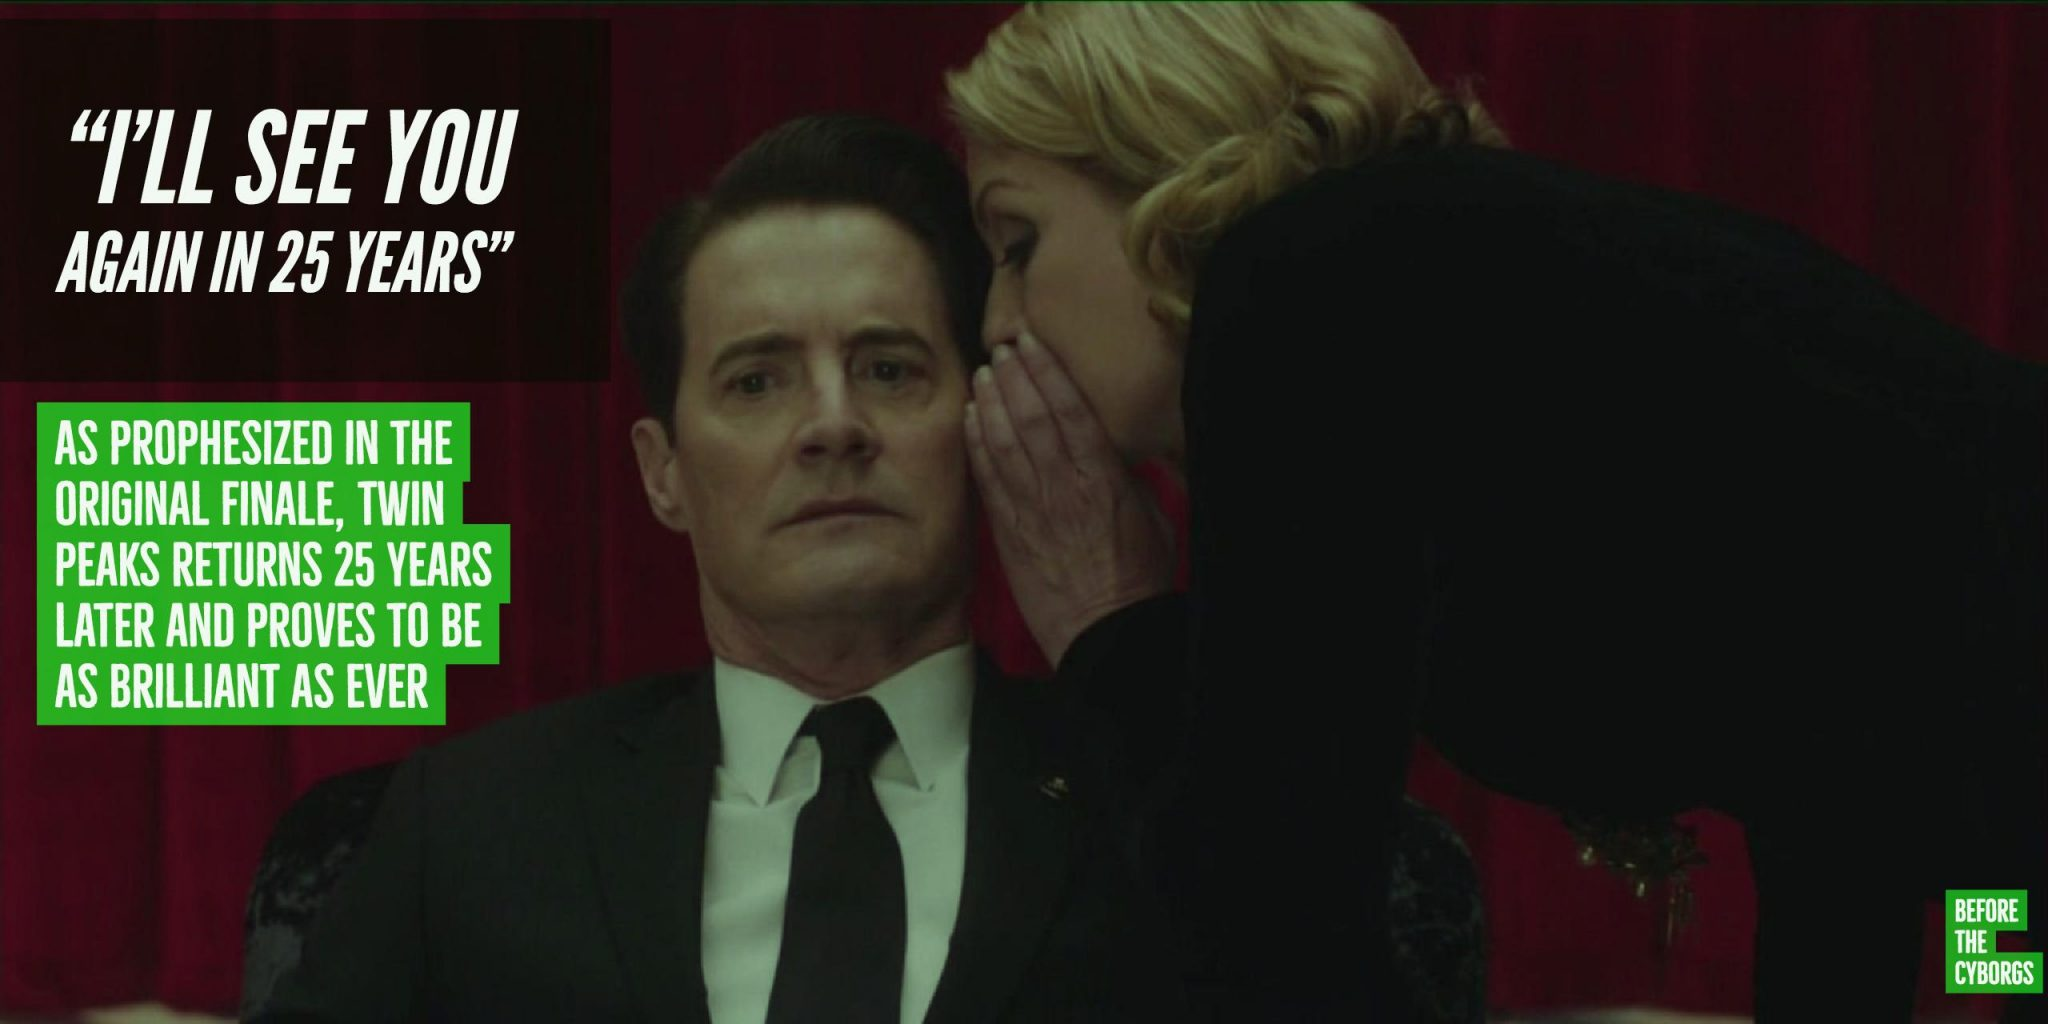 Twin Peaks 25 years return